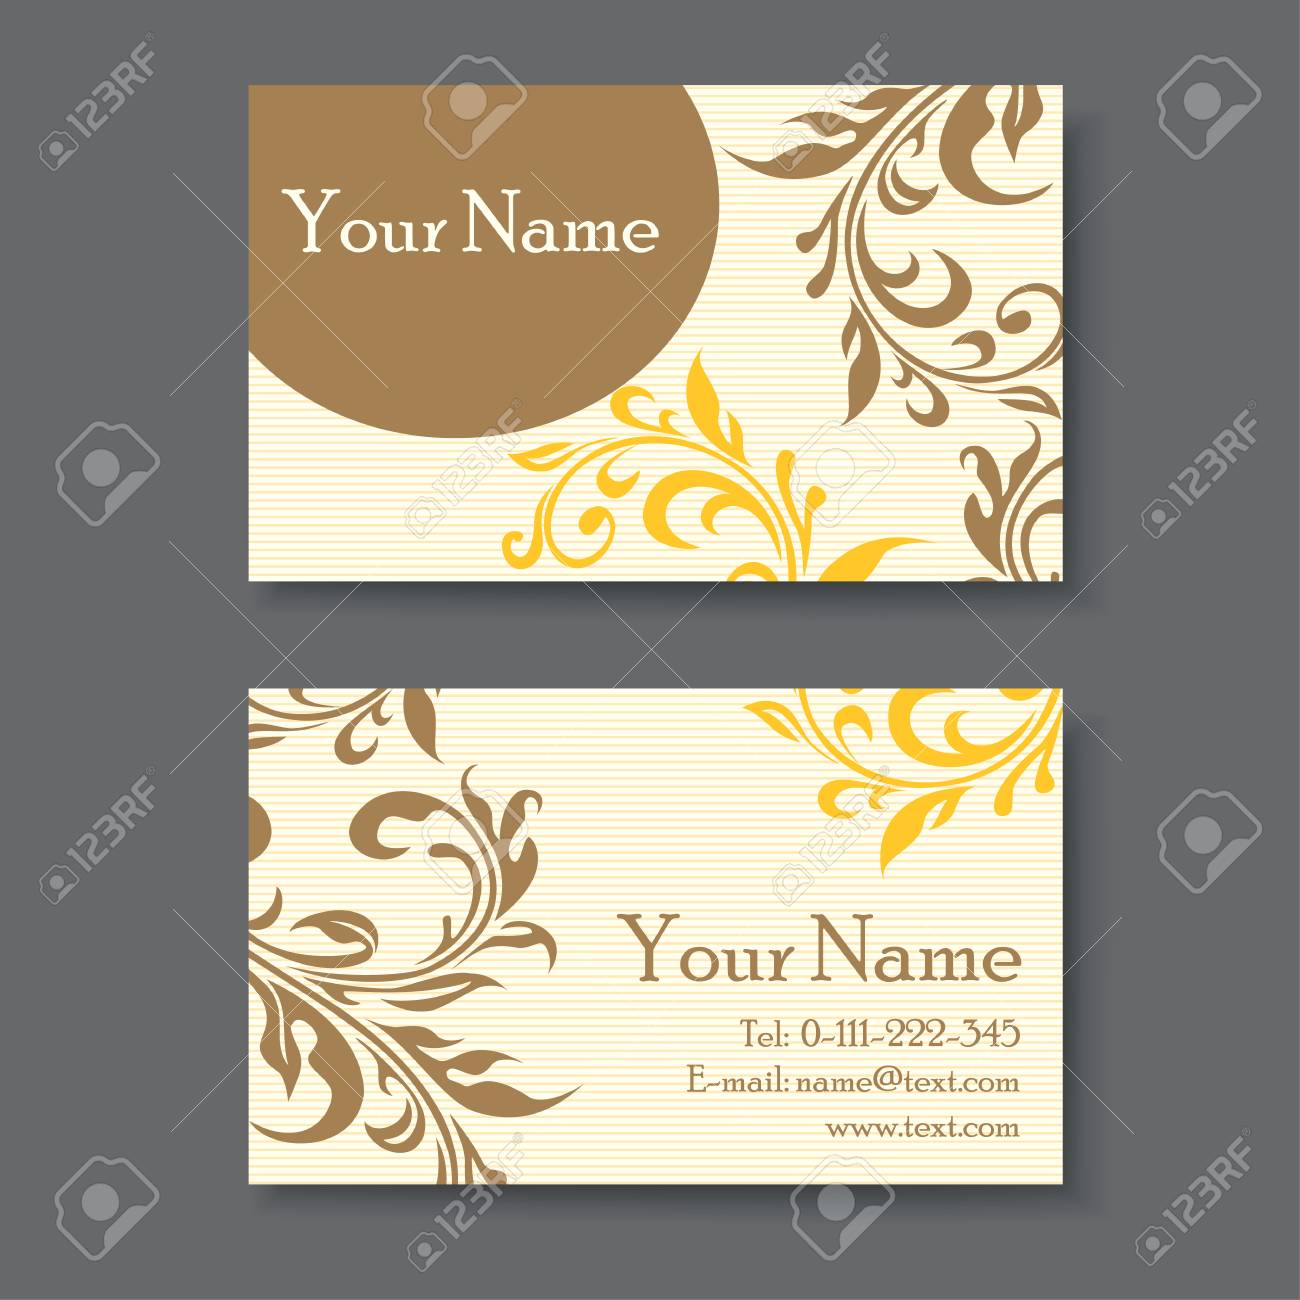 Vintage business card template with floral elements royalty free vector vintage business card template with floral elements wajeb Gallery